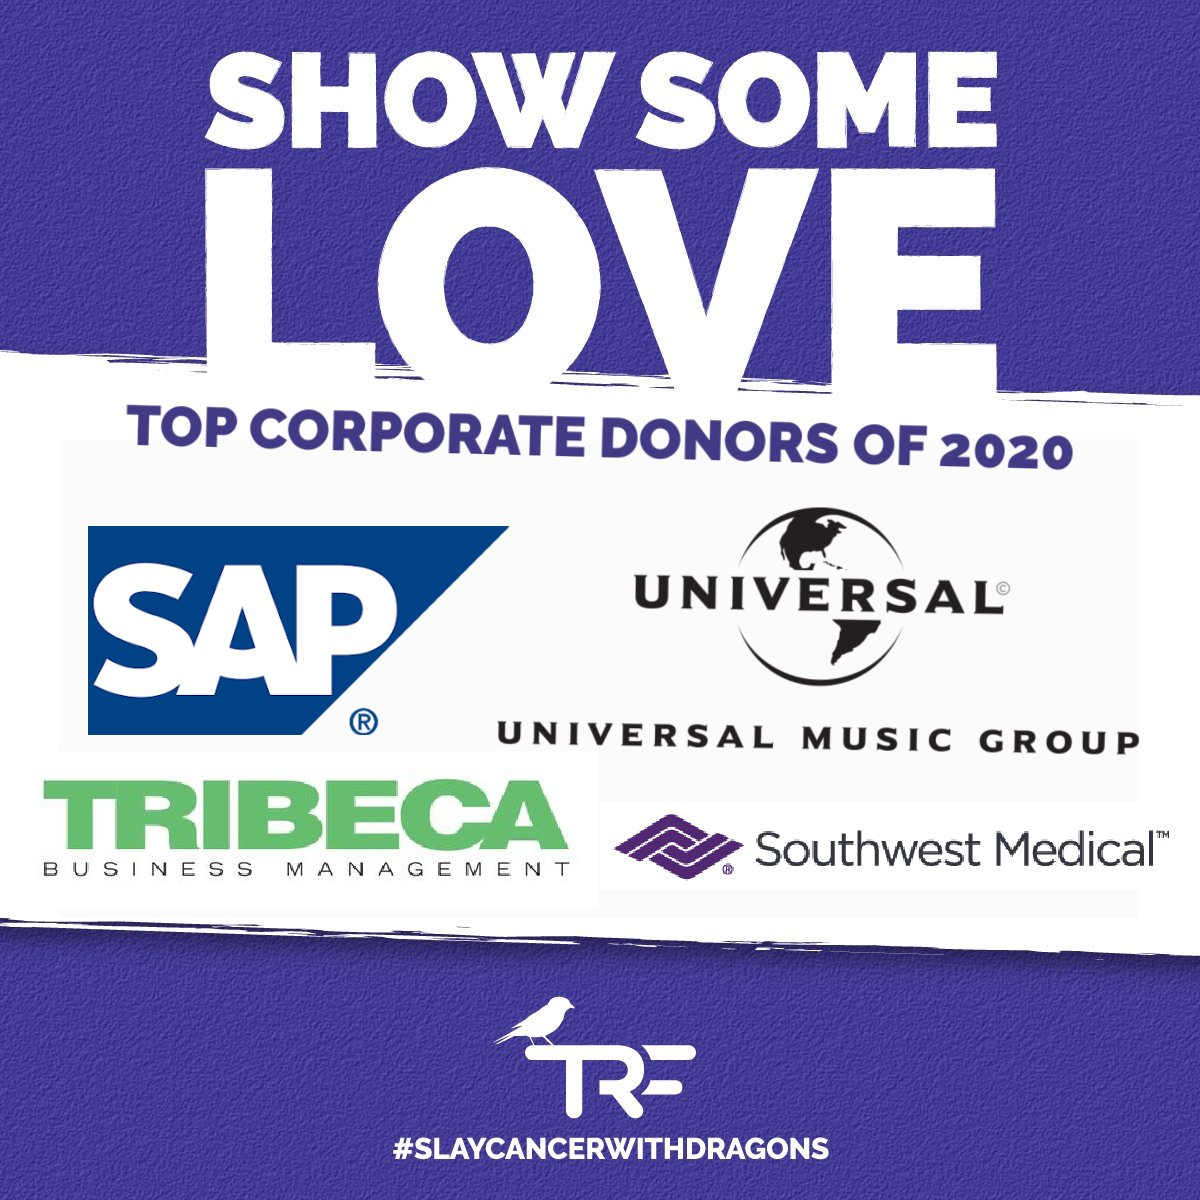 💜 We are so thankful for our friends at @SAP, @UniversalMG, Tribeca Business Management, and @sma_lv. These top corporate donors of 2020 were absolutely integral to us and our pediatric cancer families.